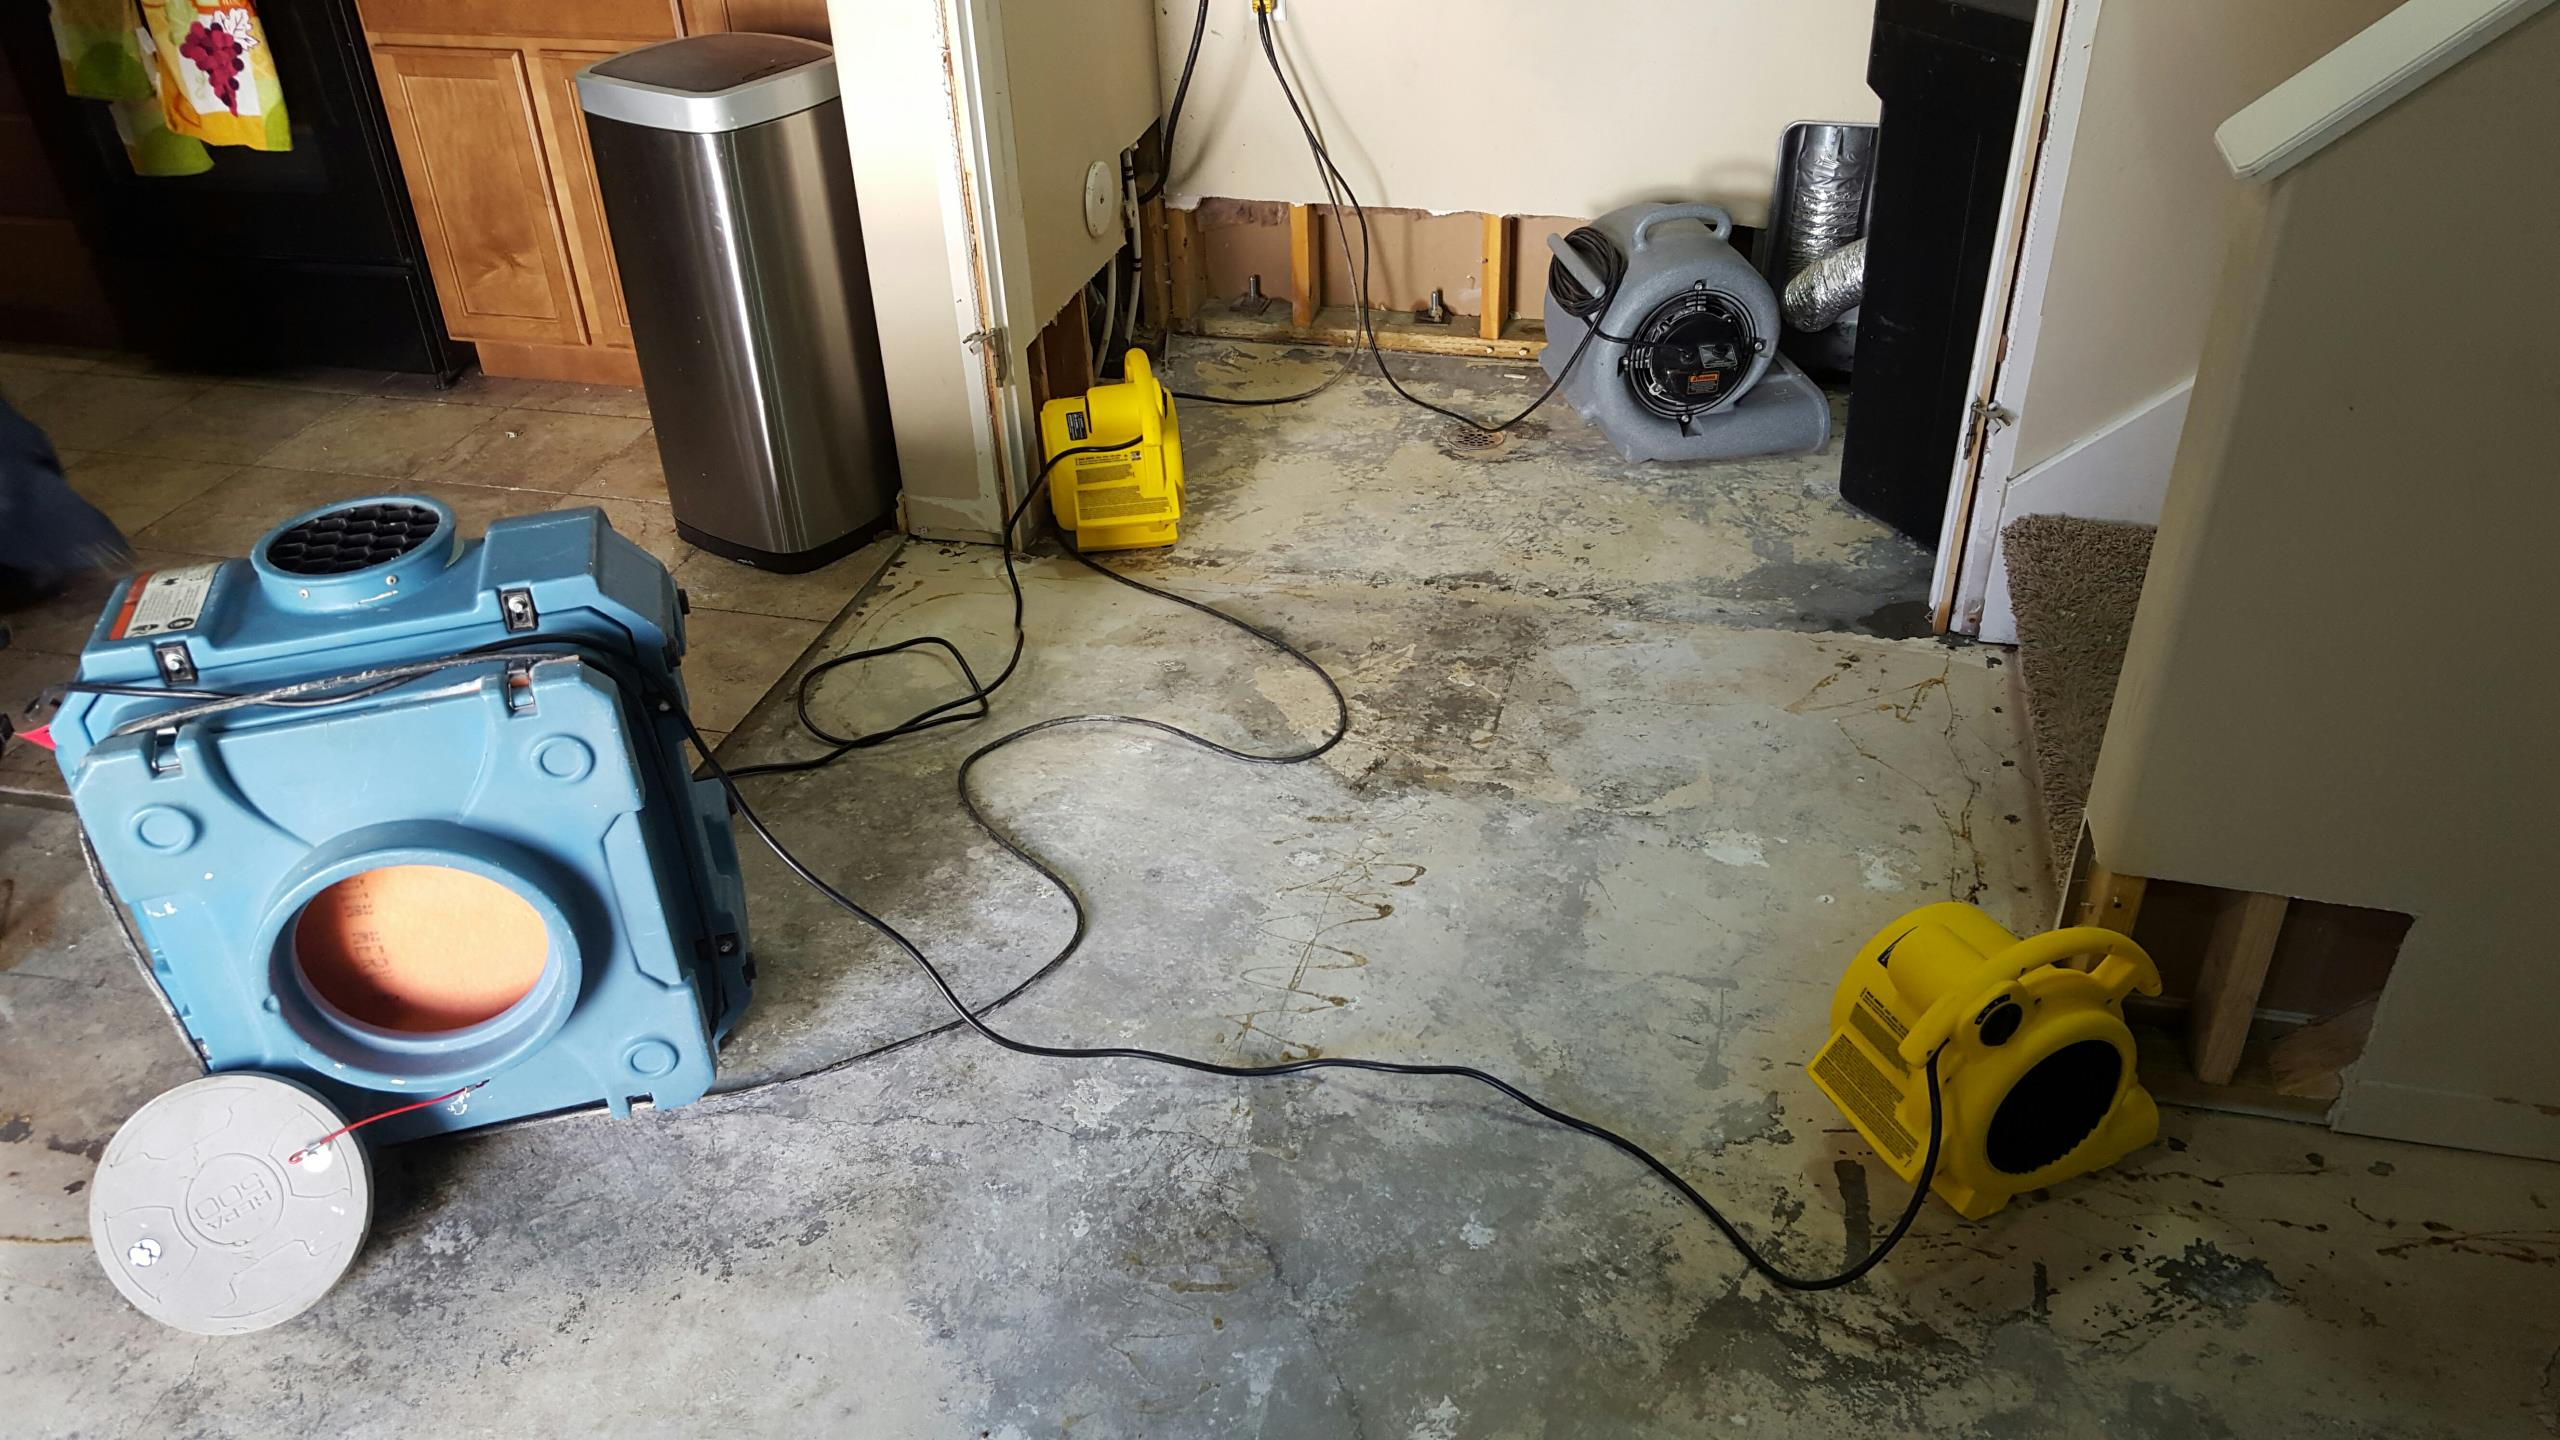 North Salt Lake, UT - Setting up equipment after pressure washing and applying antimicrobial spray. Last step of mitigating a sewer backup.